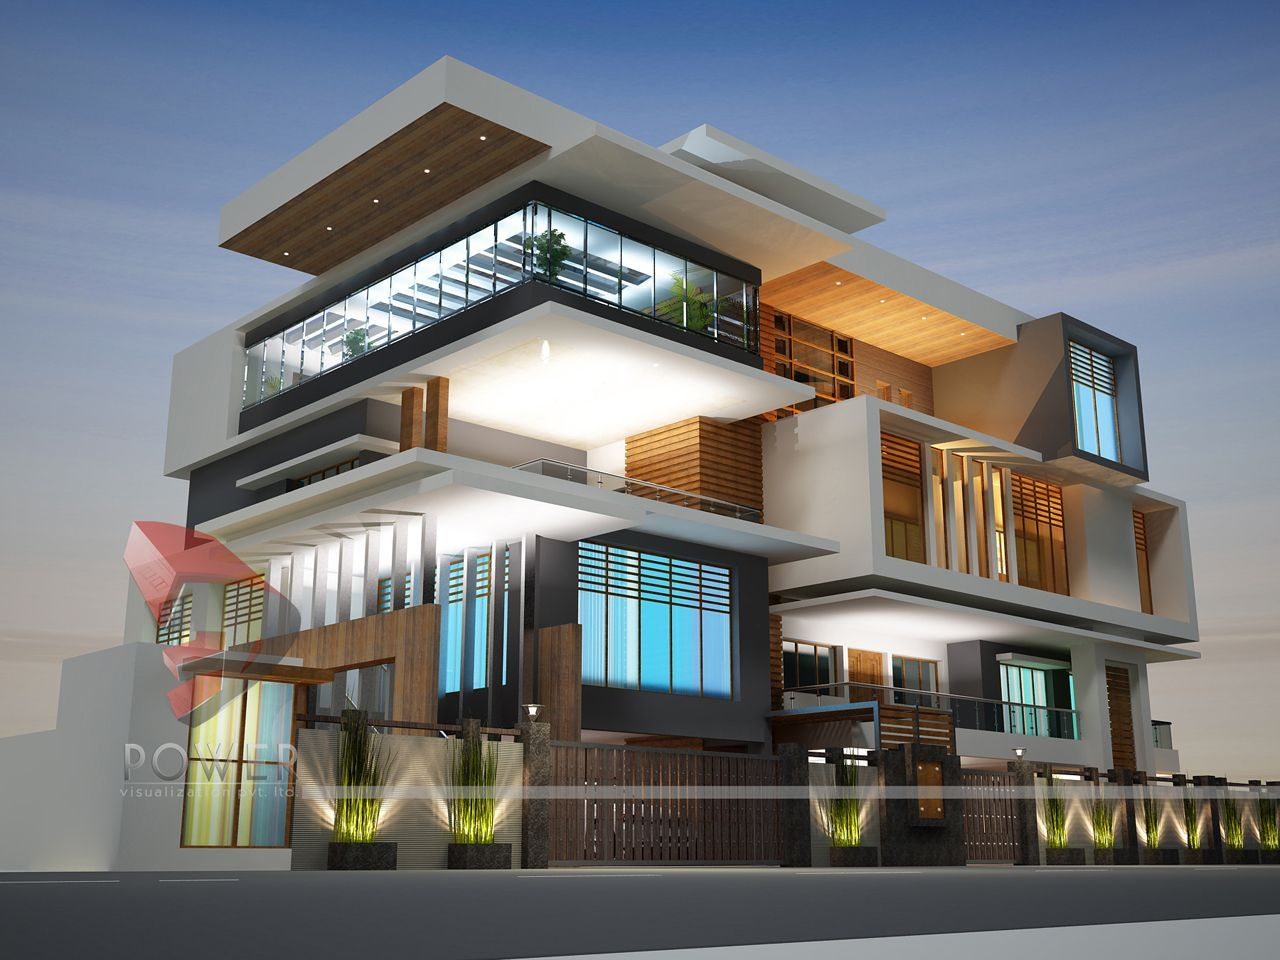 Modern house design in india architecture india modern for Modern villa architecture